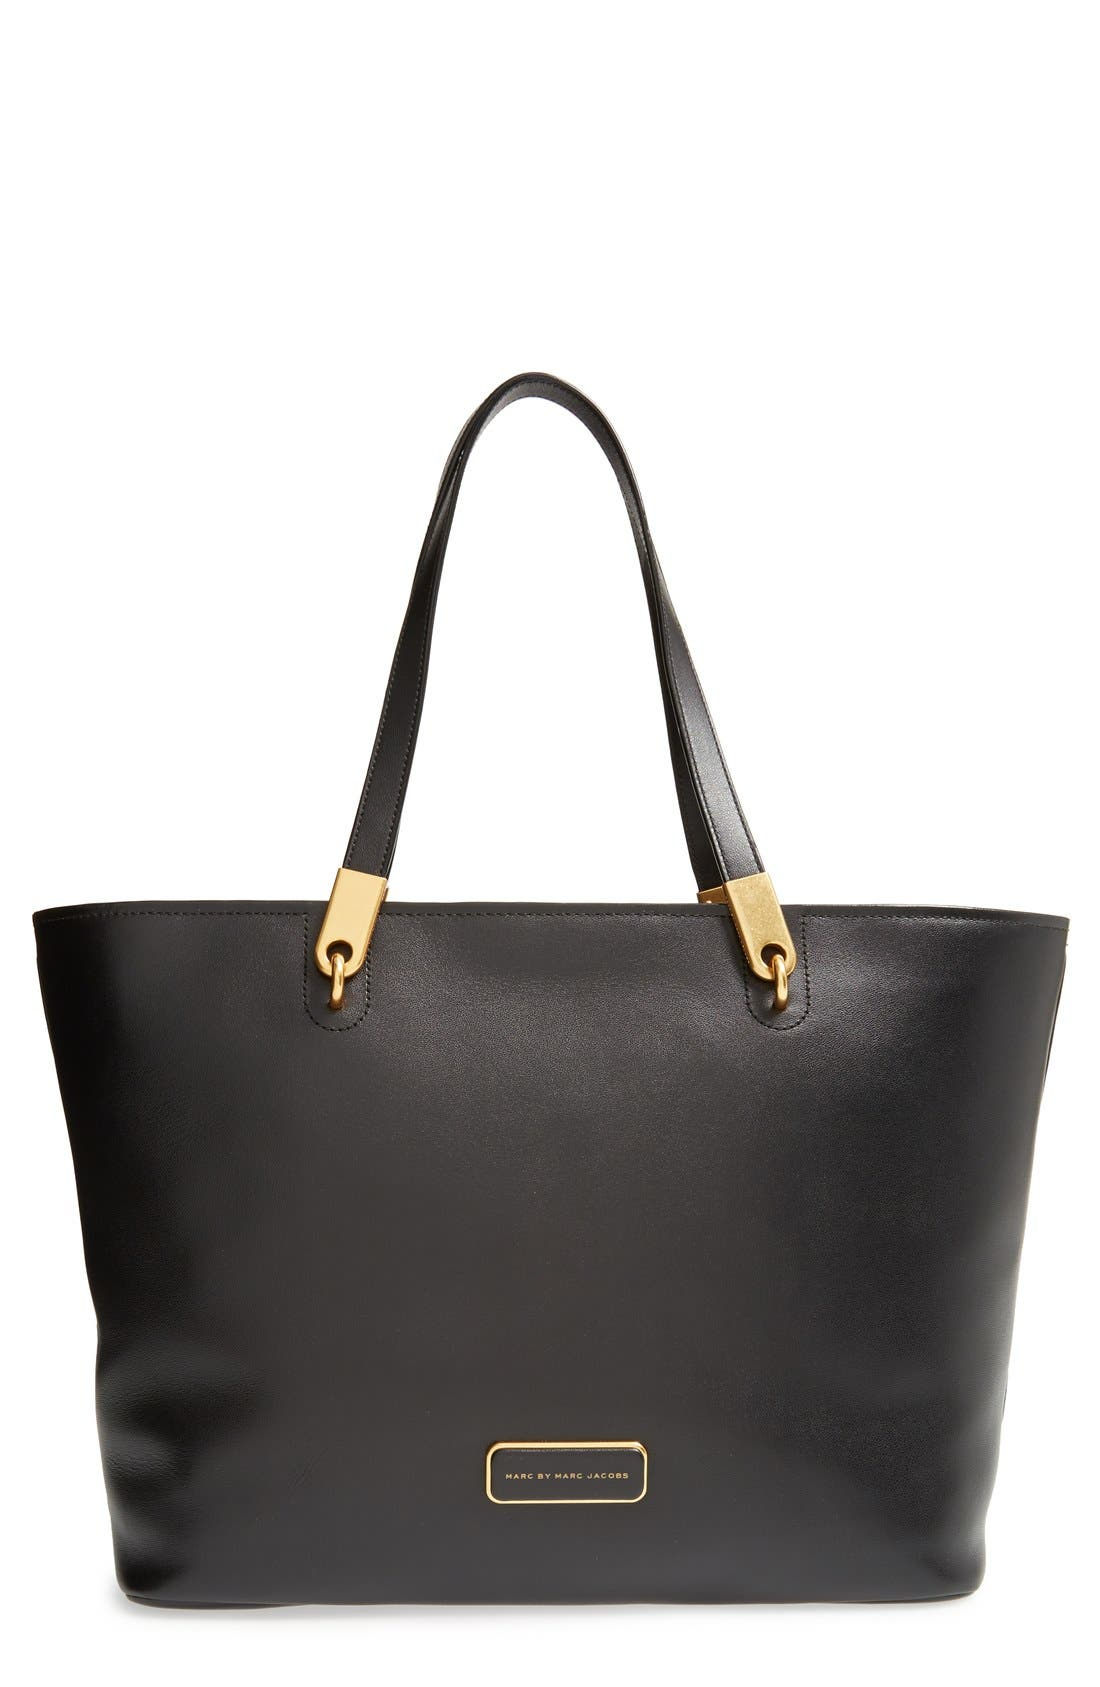 MARC BY MARC JACOBS 'Ligero' Leather Tote, Main, color, 001